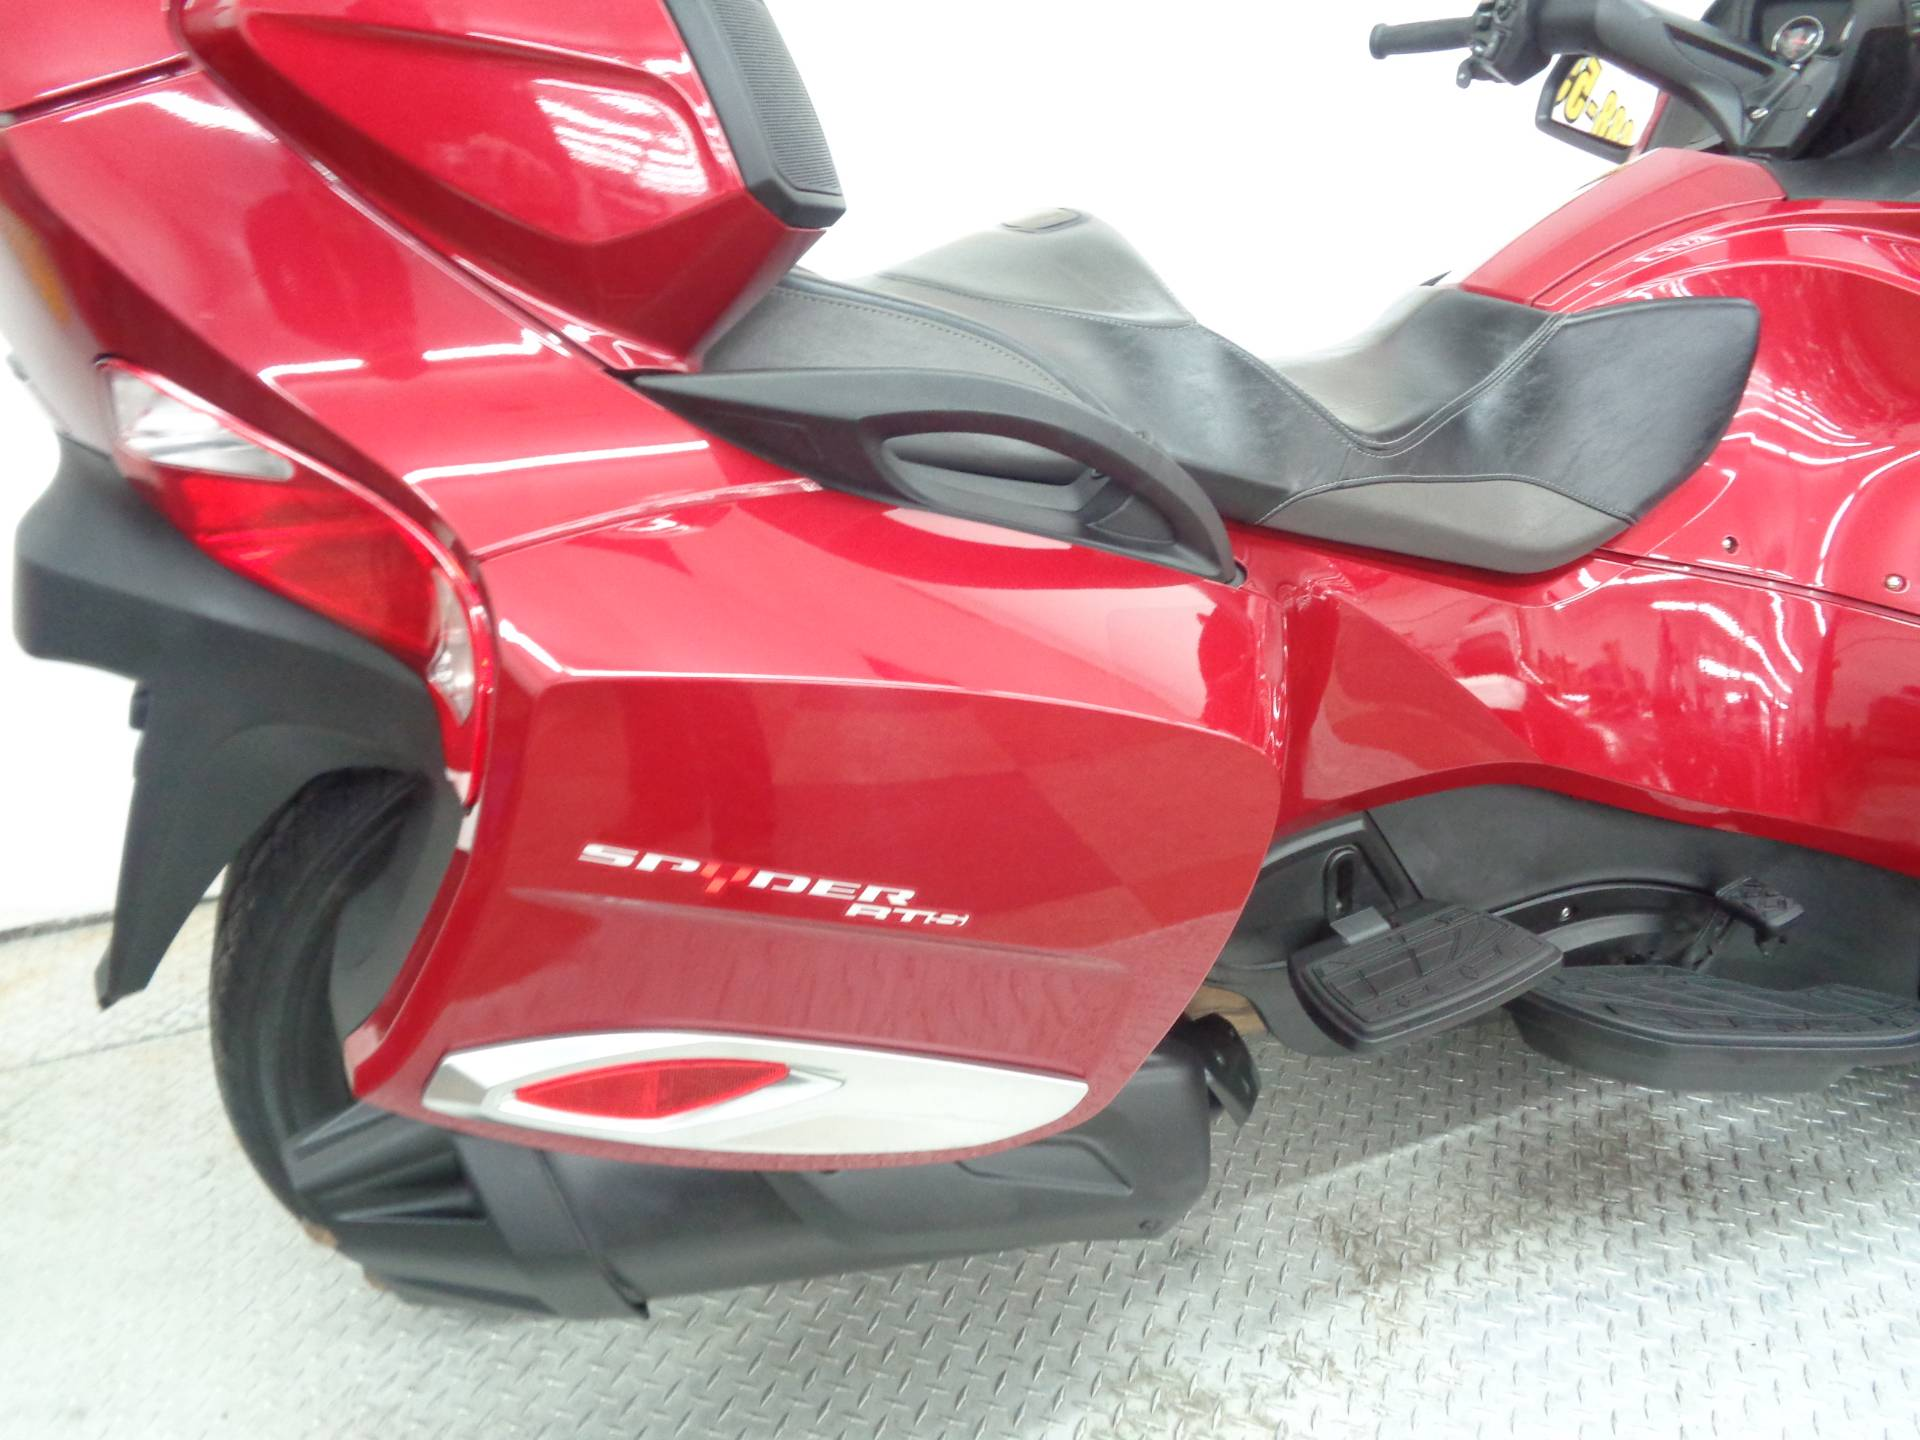 2016 Can-Am Spyder RT-S SE6 in Tulsa, Oklahoma - Photo 6